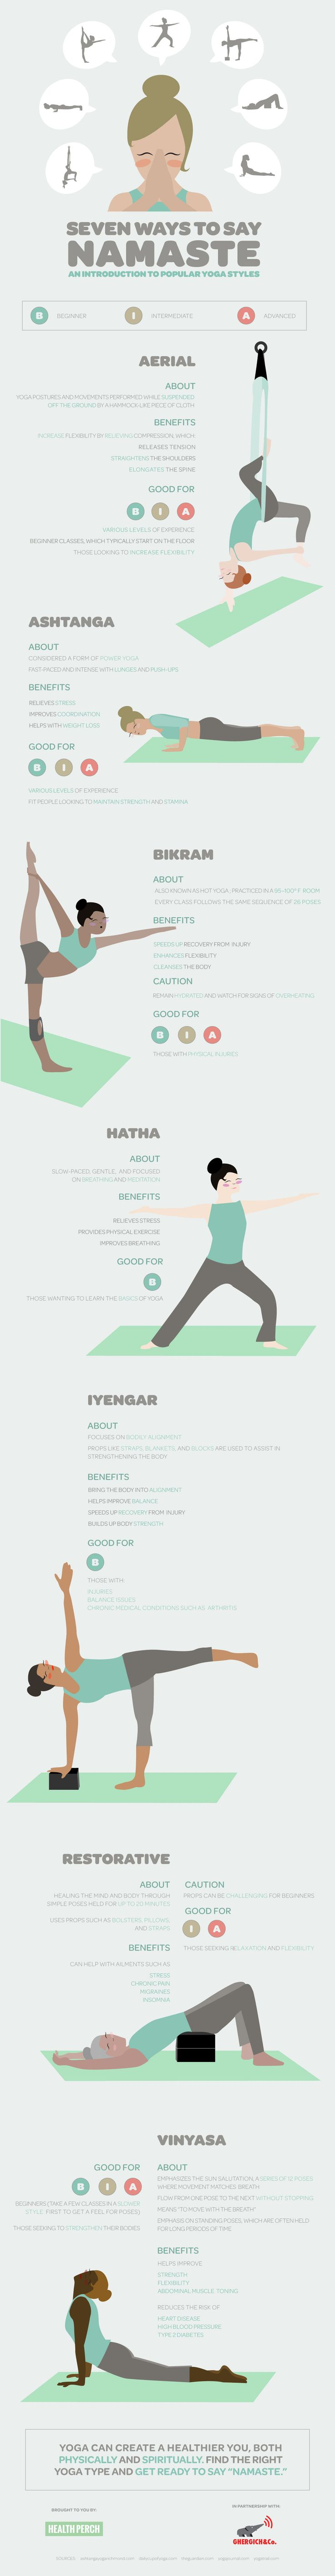 Seven Ways to Say Namaste - Popular Yoga Styles http://www.northwestpharmacy.com/healthperch/yoga-styles/ | Loved and pinned by www.downdogboutique.com